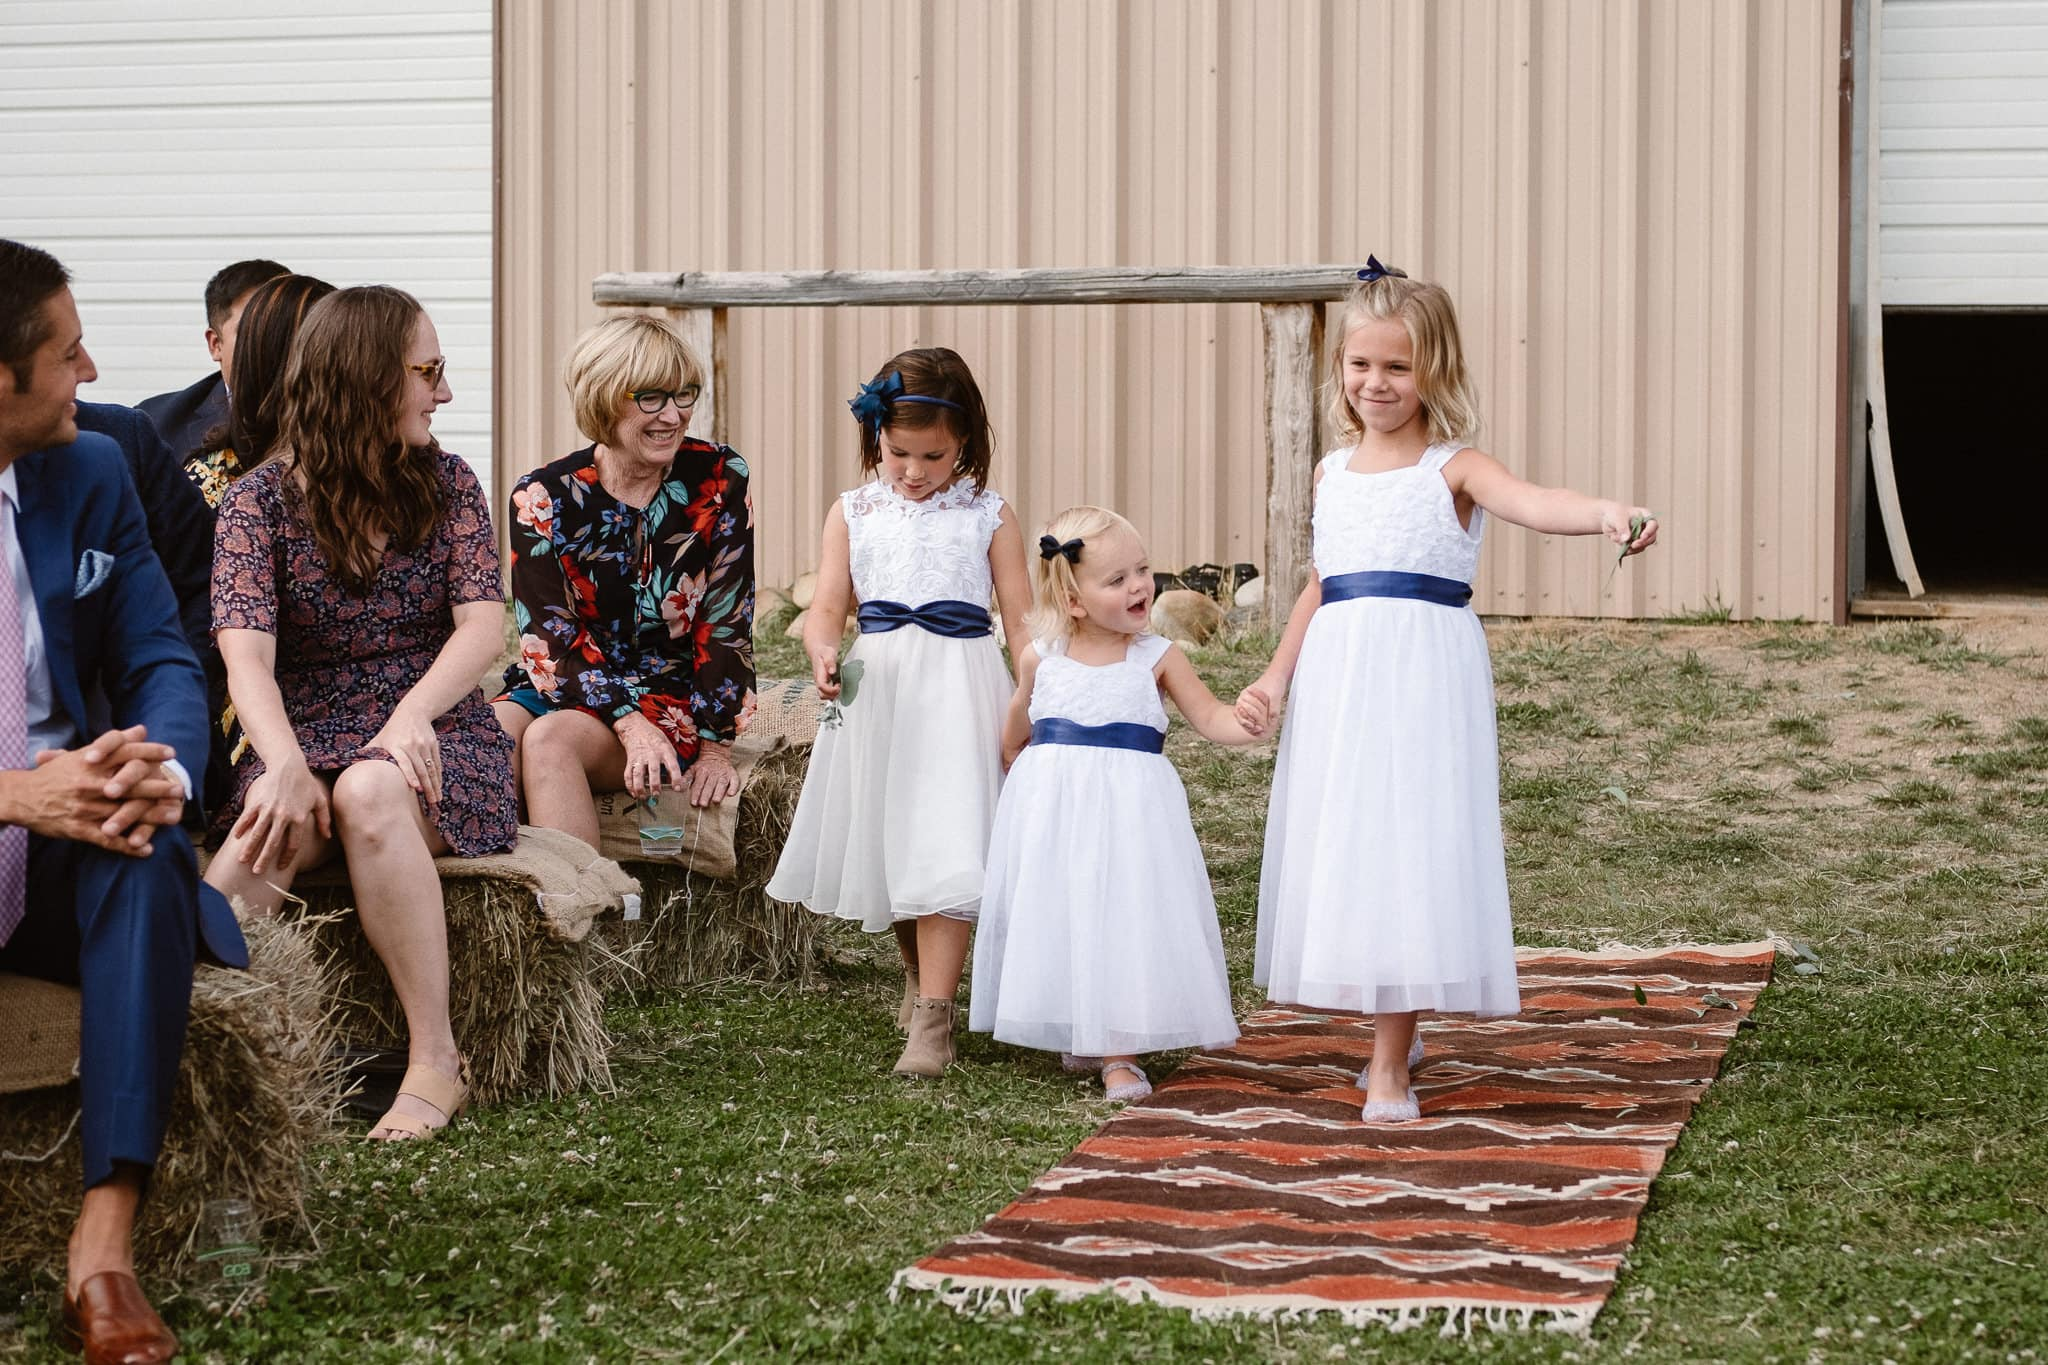 Steamboat Springs wedding photographer, La Joya Dulce wedding, Colorado ranch wedding venues, outdoor wedding ceremony, flower girls walking up aisle